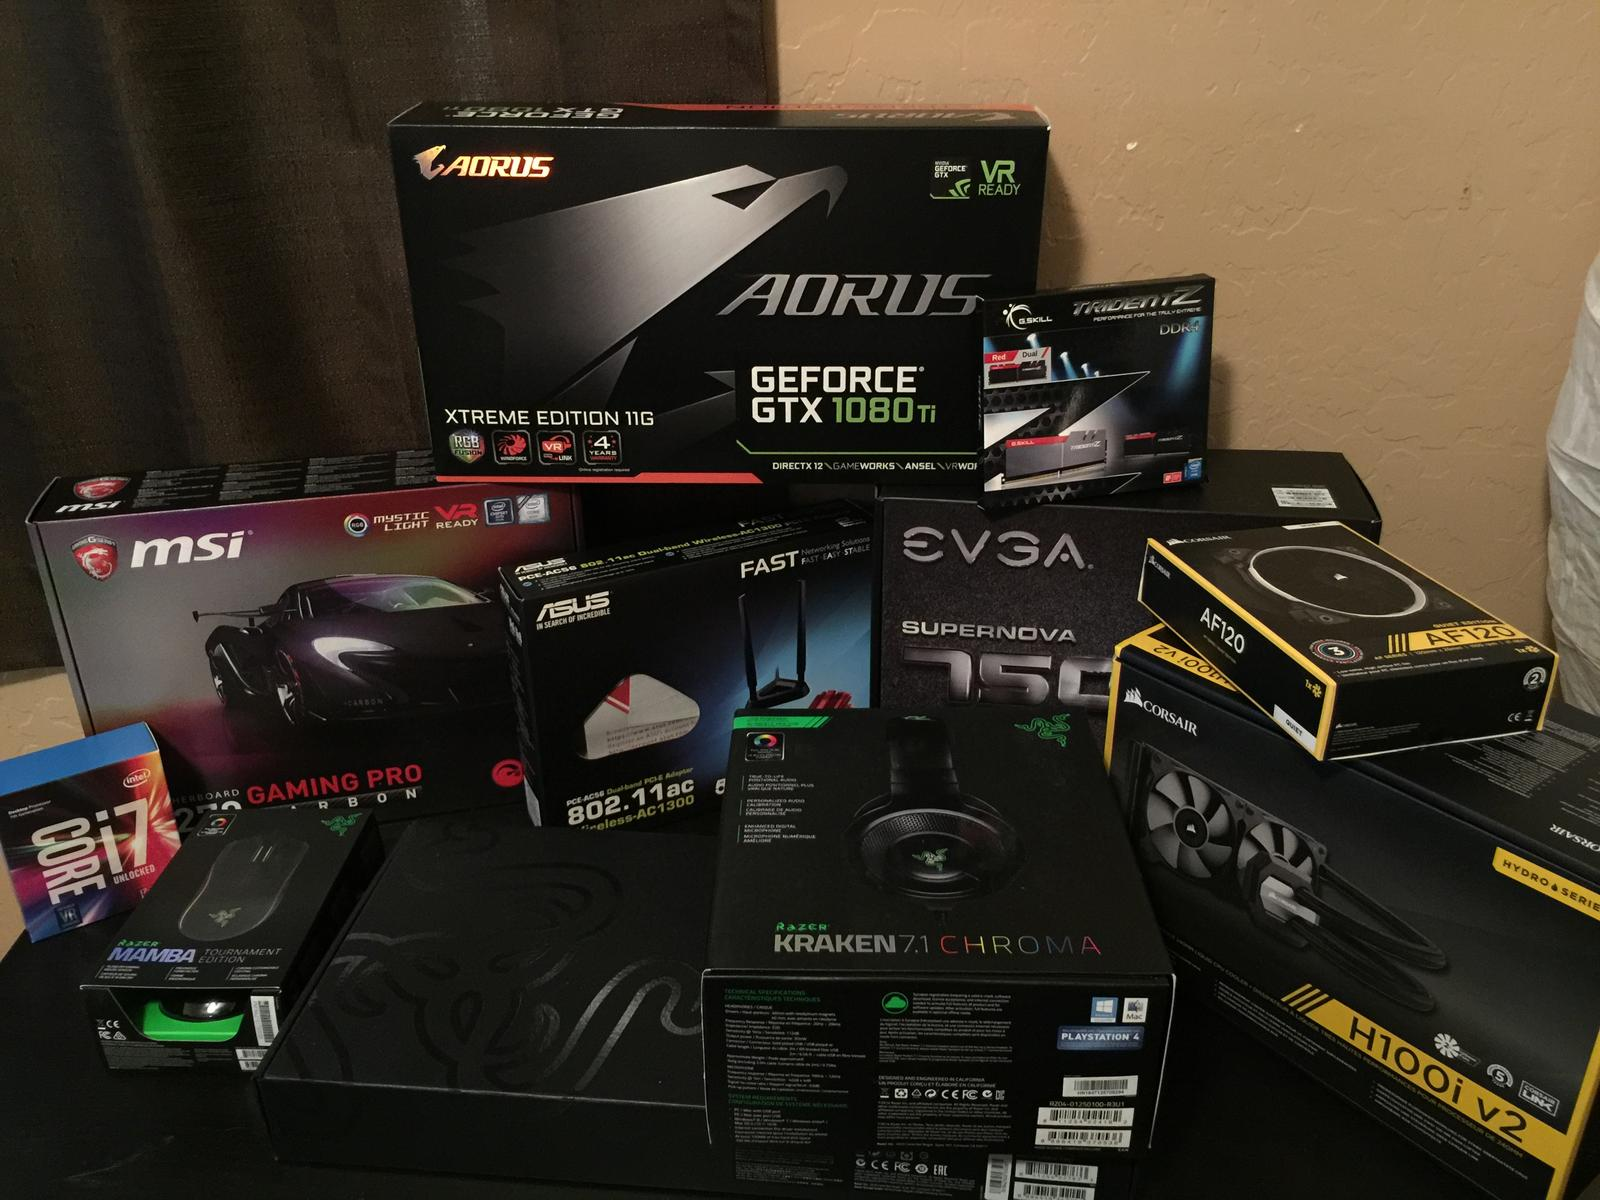 ROG GeForce GTX 1080 Ti 11GB C STRIX Asus NVIDIA 1080 ti G ming 11GB Video Graphics